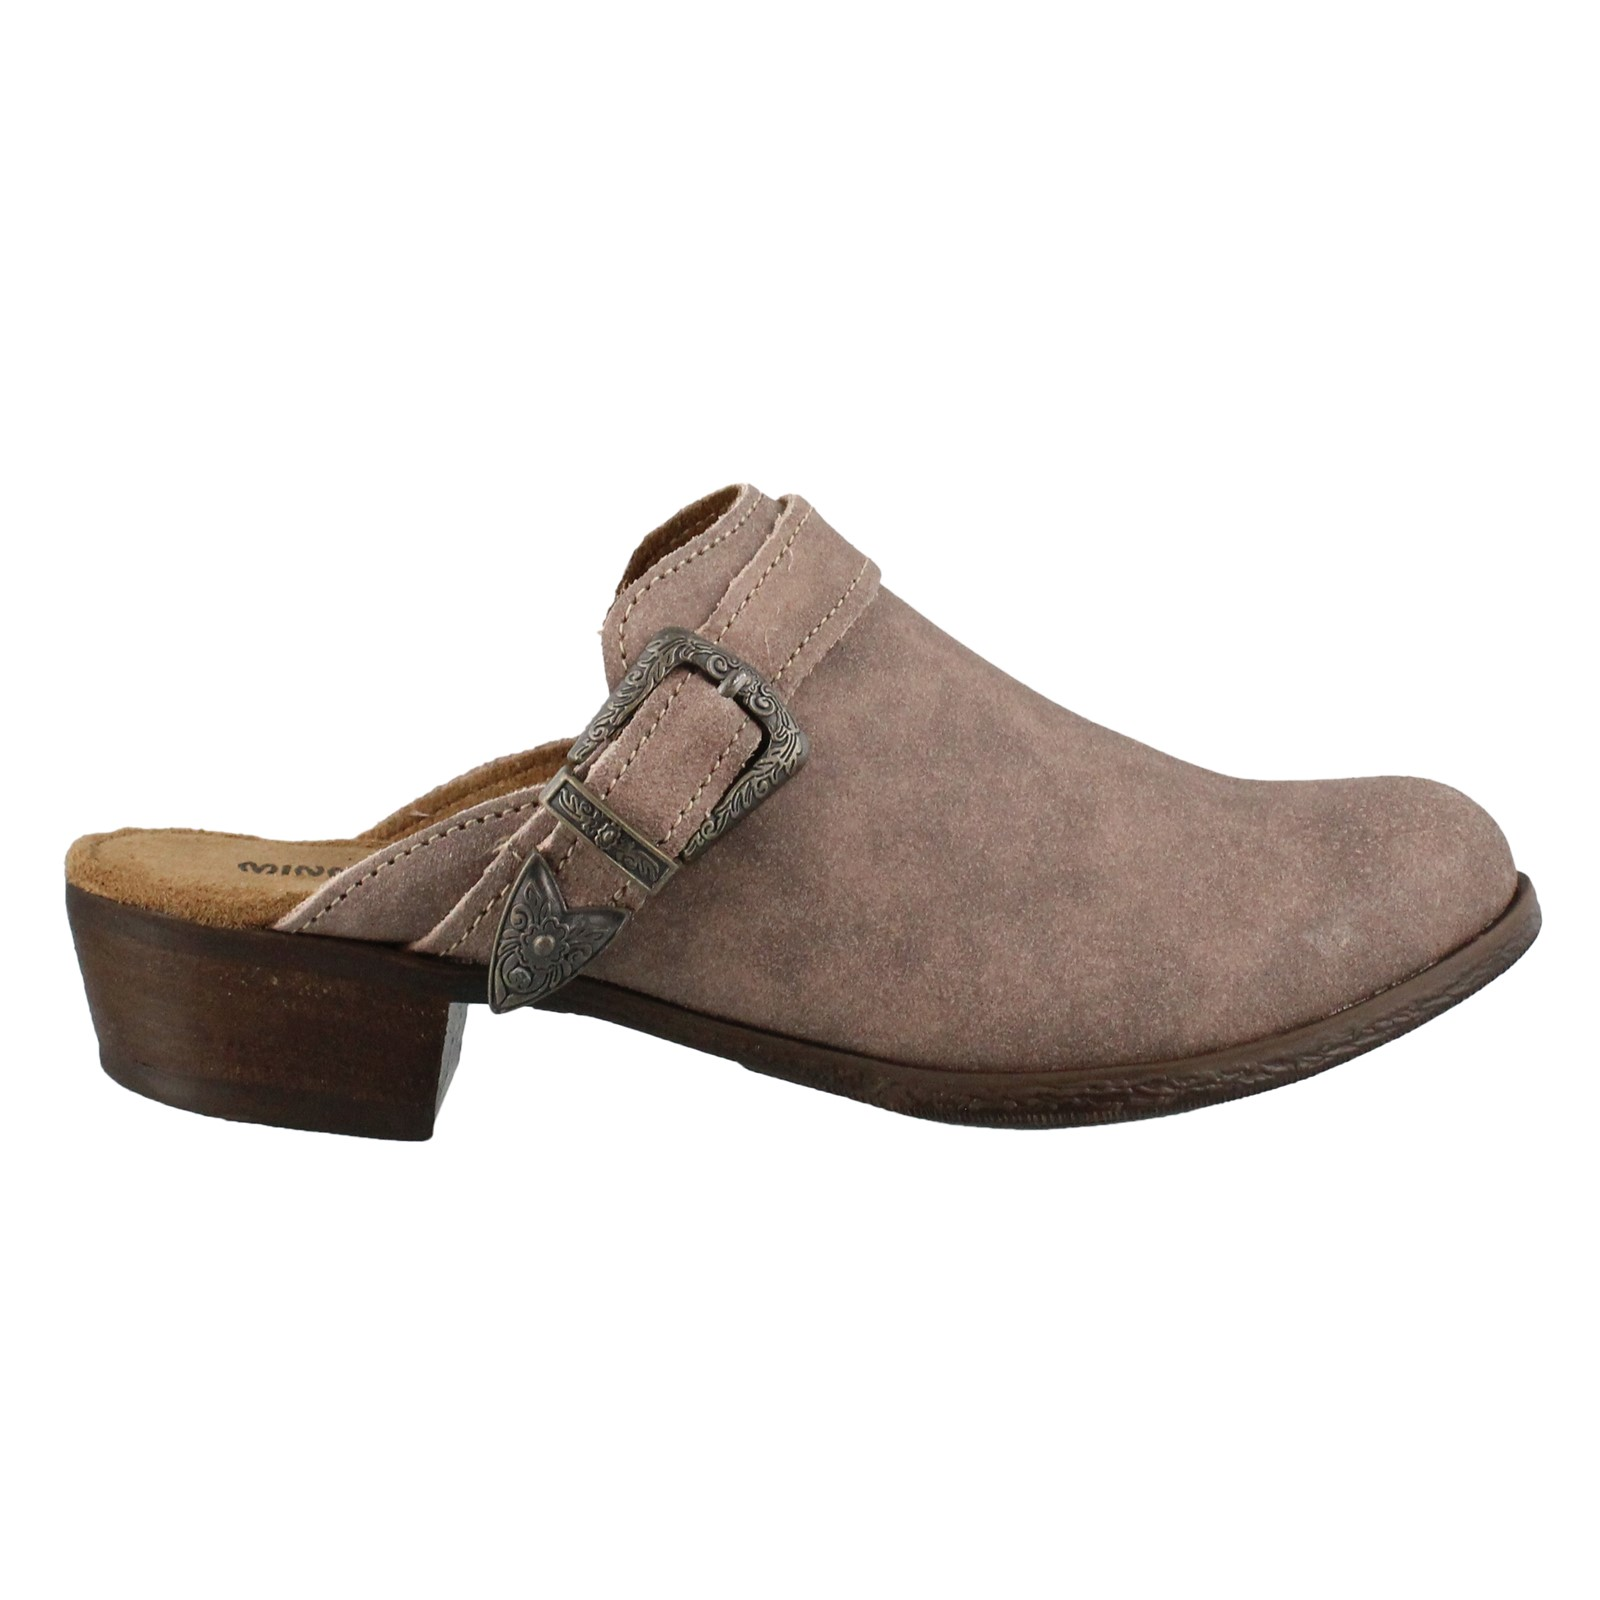 Women's Minnetonka, Billie slip on casual clogs